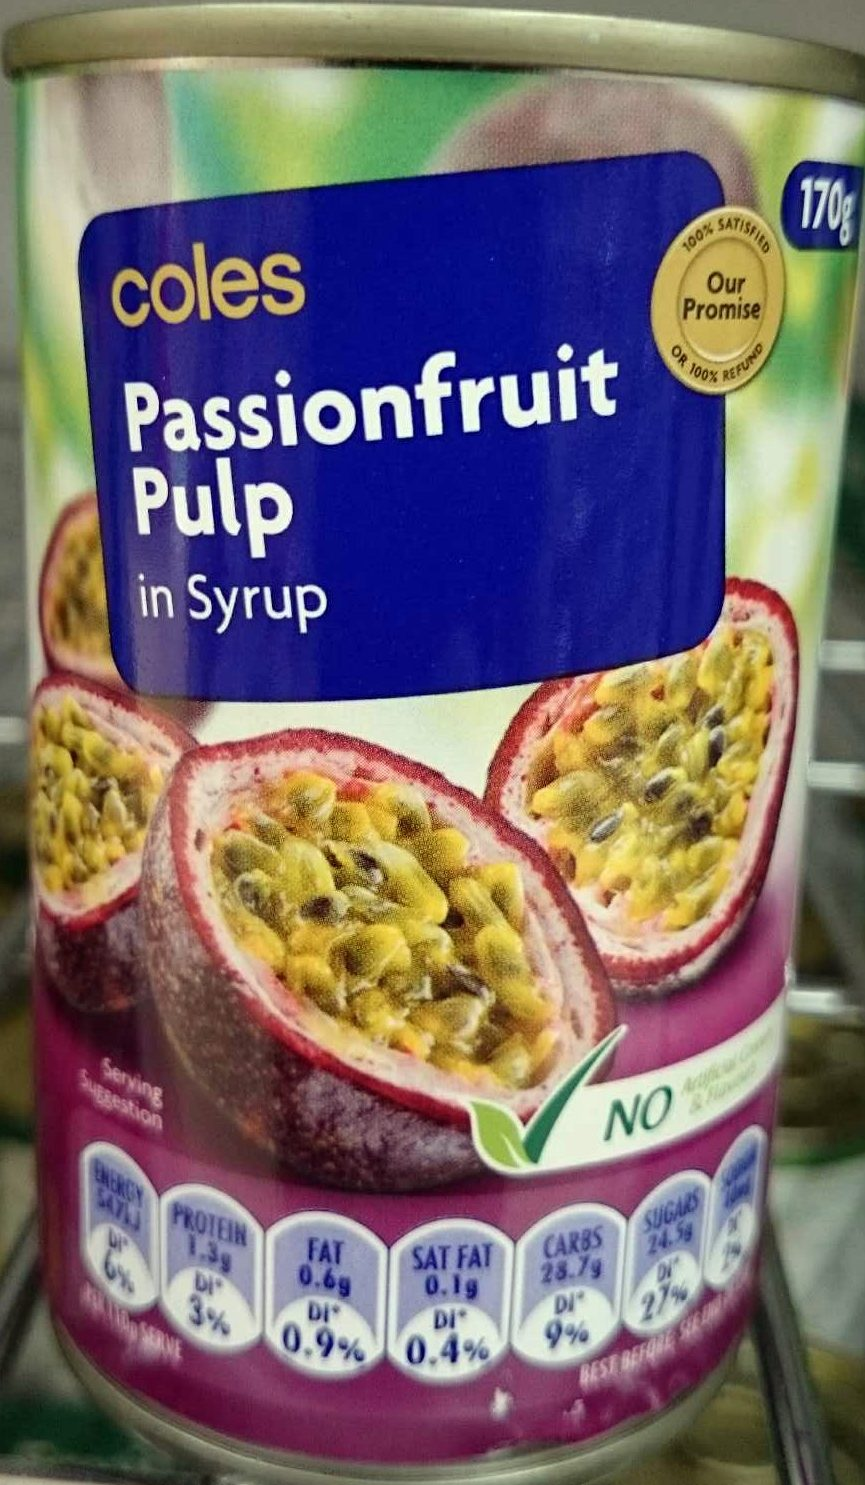 Passionfruit Pulp in Syrup - Product - en